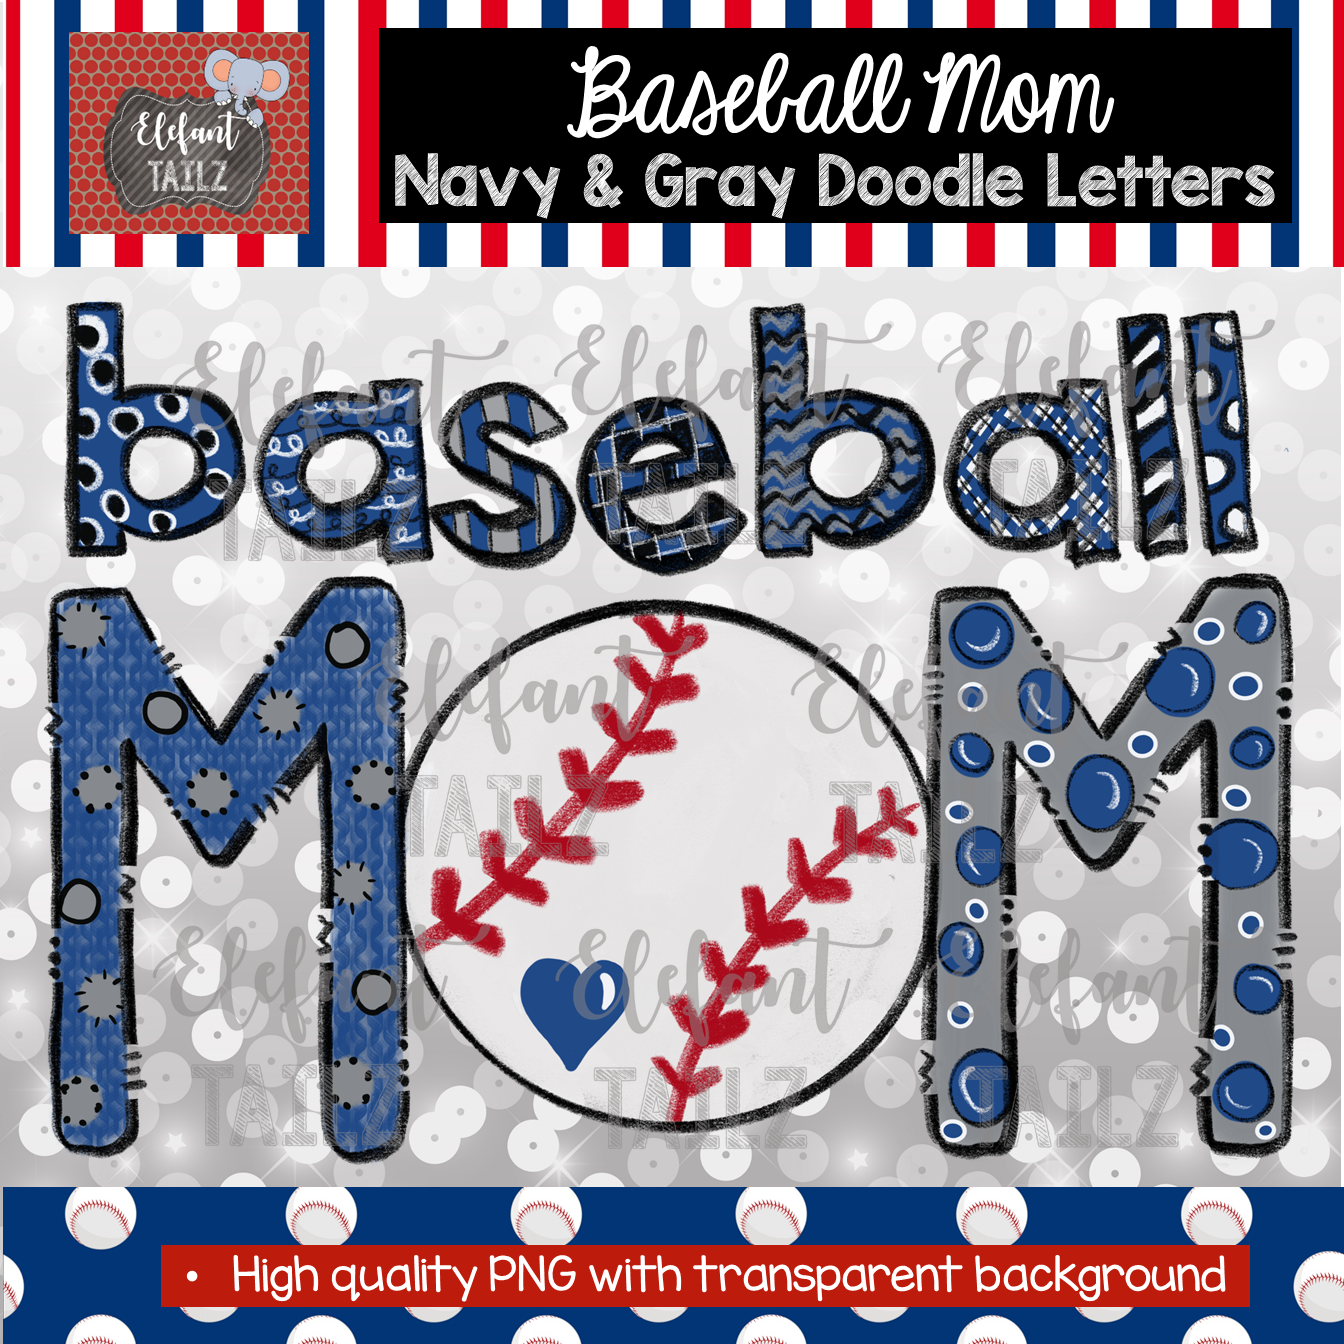 Baseball Mom Doodle Letters - Navy & Gray